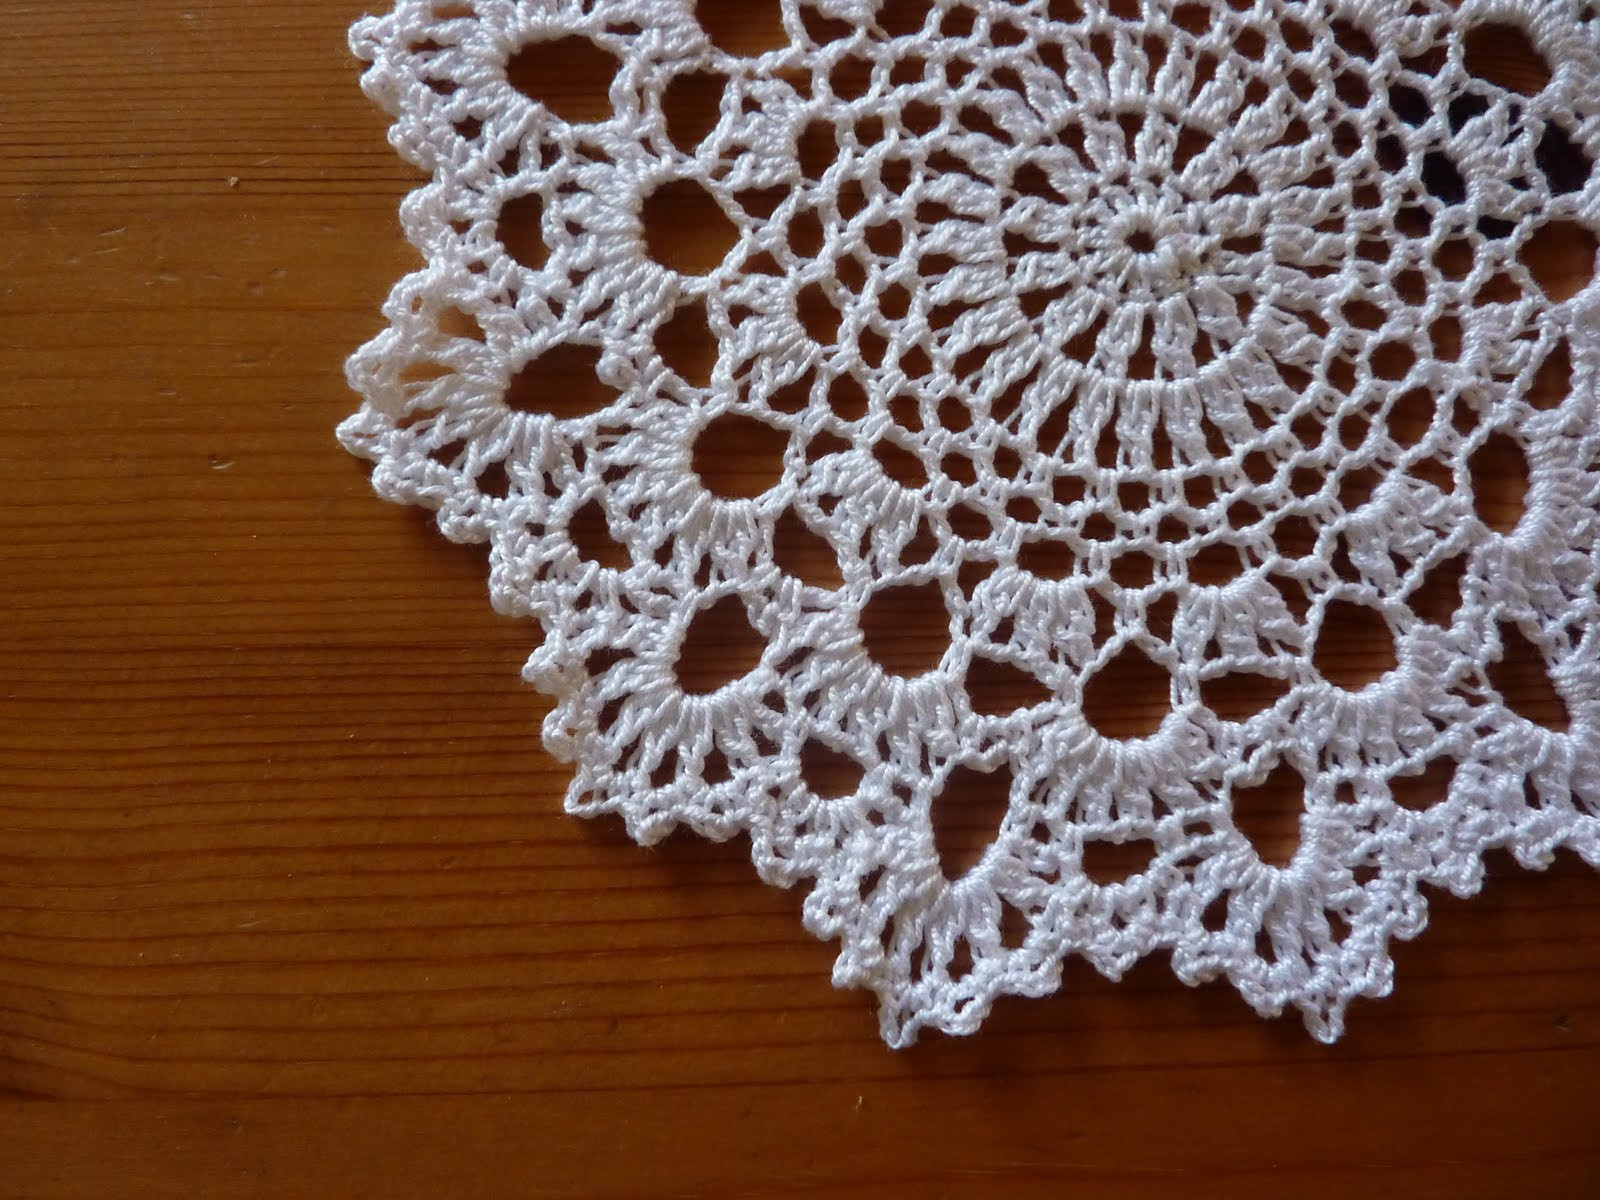 Crochet Doily Patterns Elegant Yellow Pink and Sparkly Another Doily Of Contemporary 43 Pics Crochet Doily Patterns